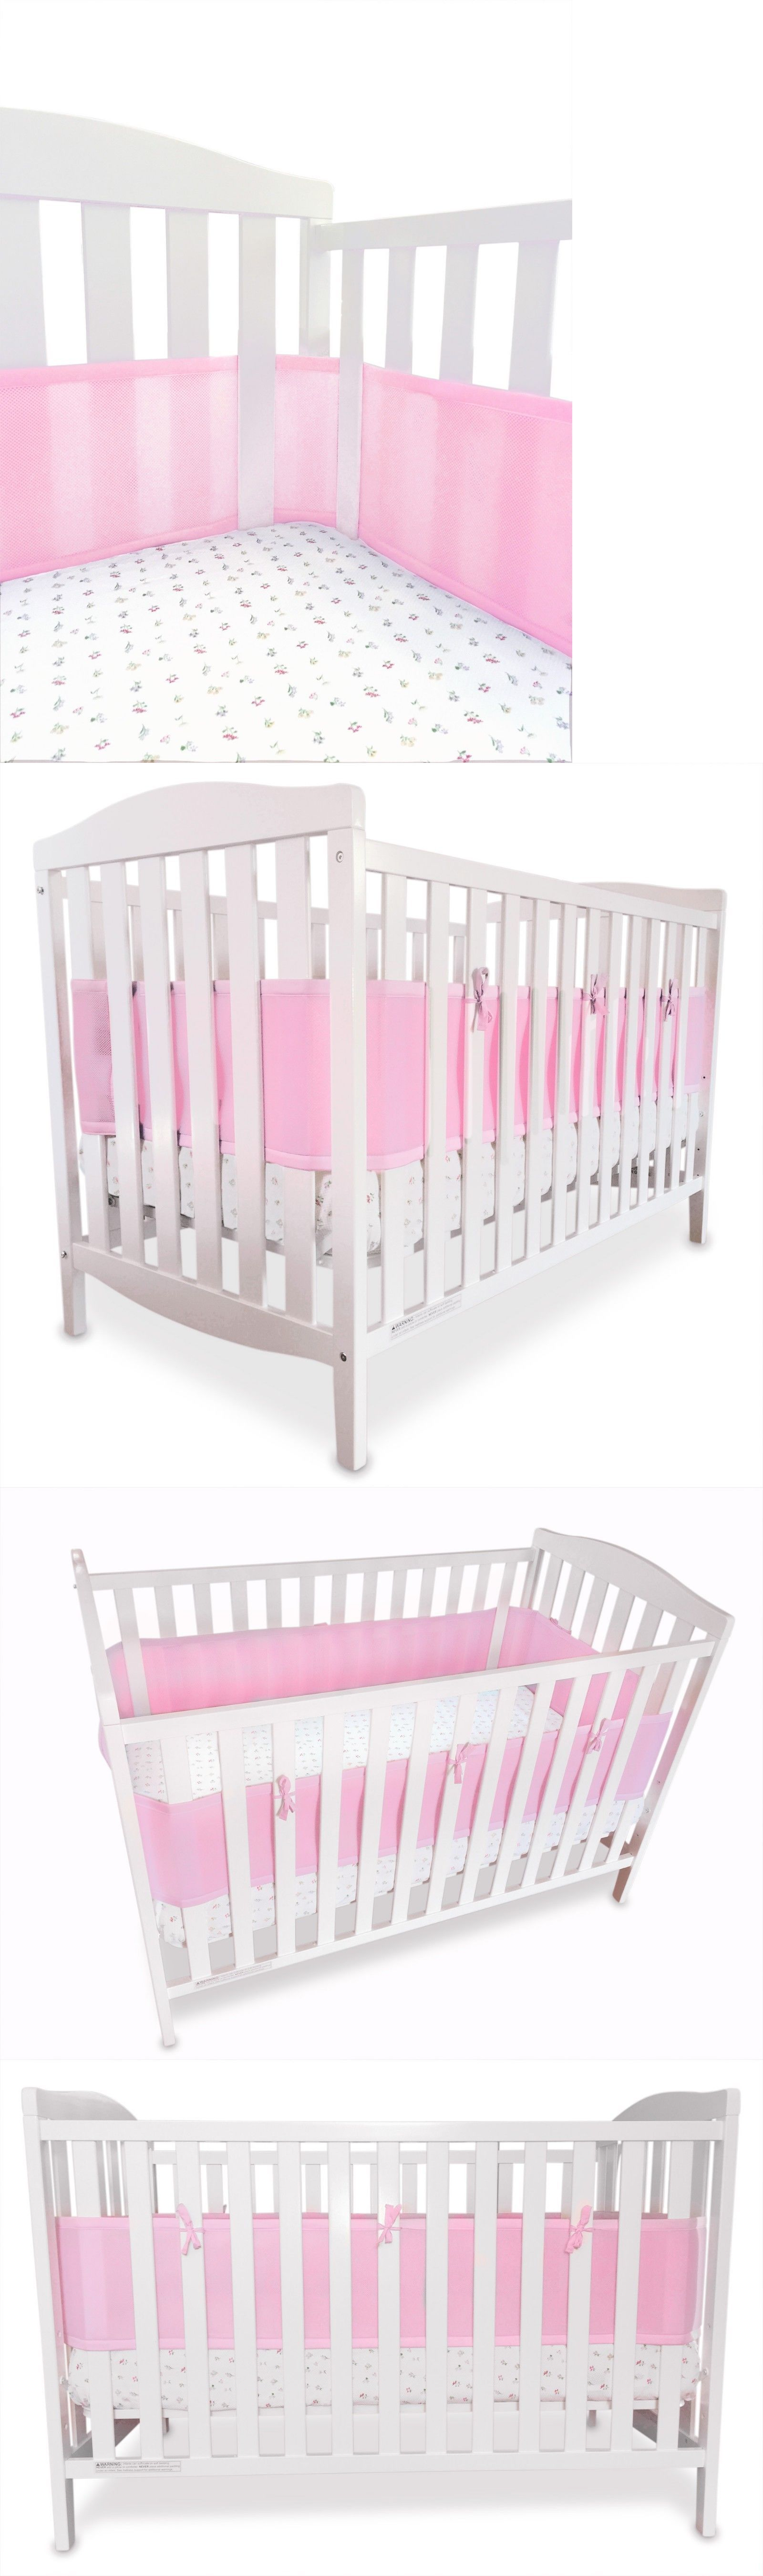 Bumpers 20417 Breathable Portable Crib Bumper Pink Mesh Liner For